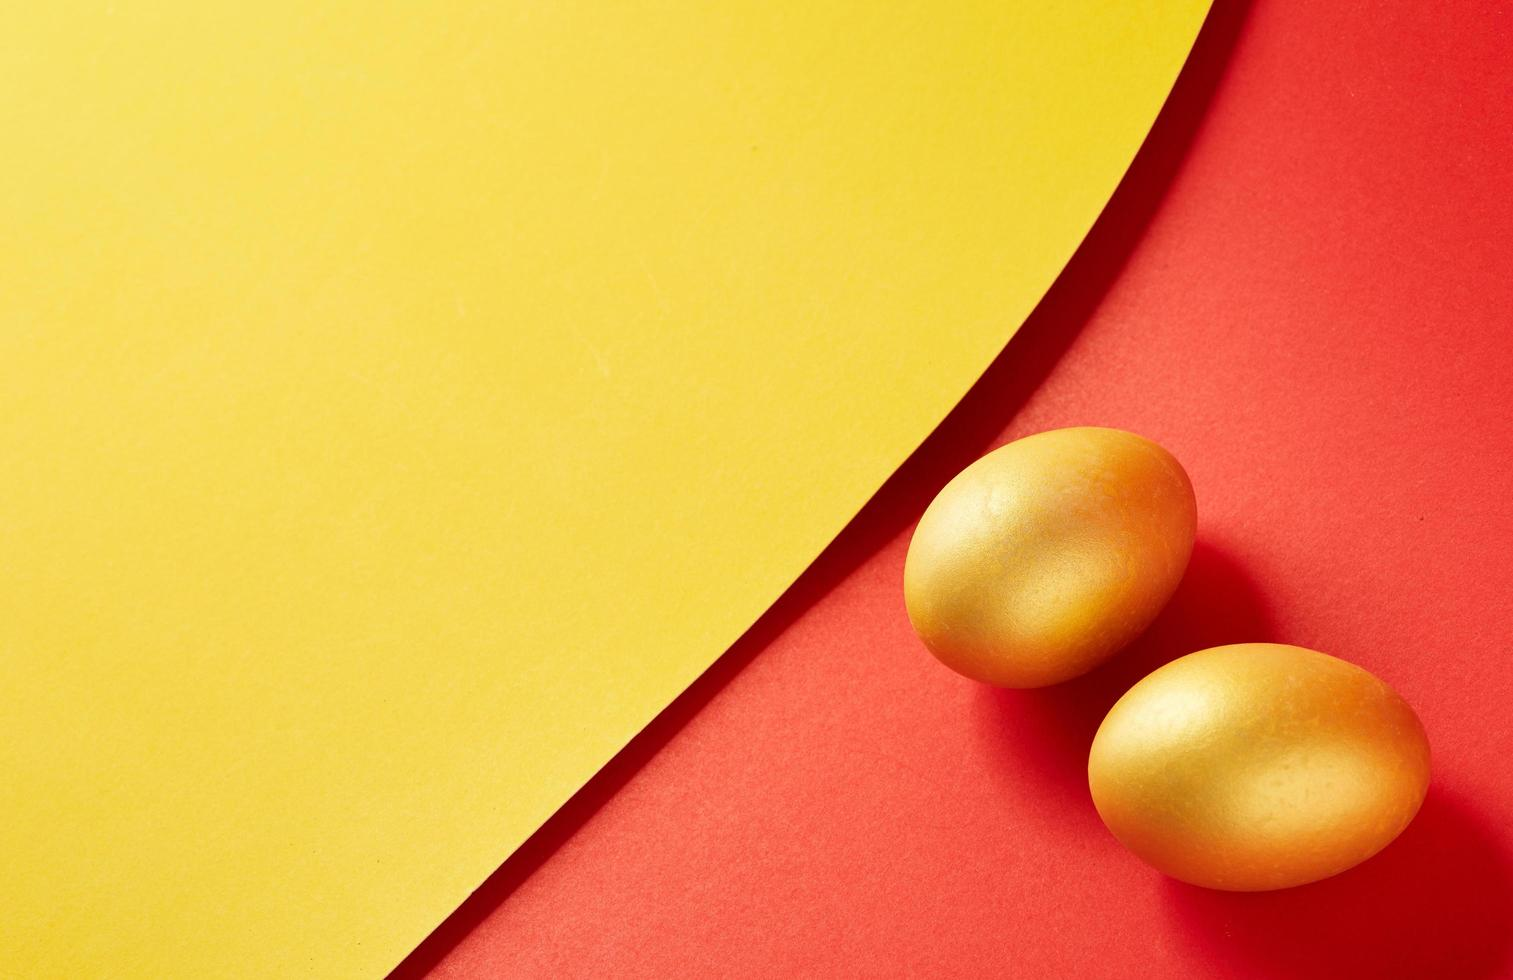 oeufs d'or sur fond jaune et rouge photo